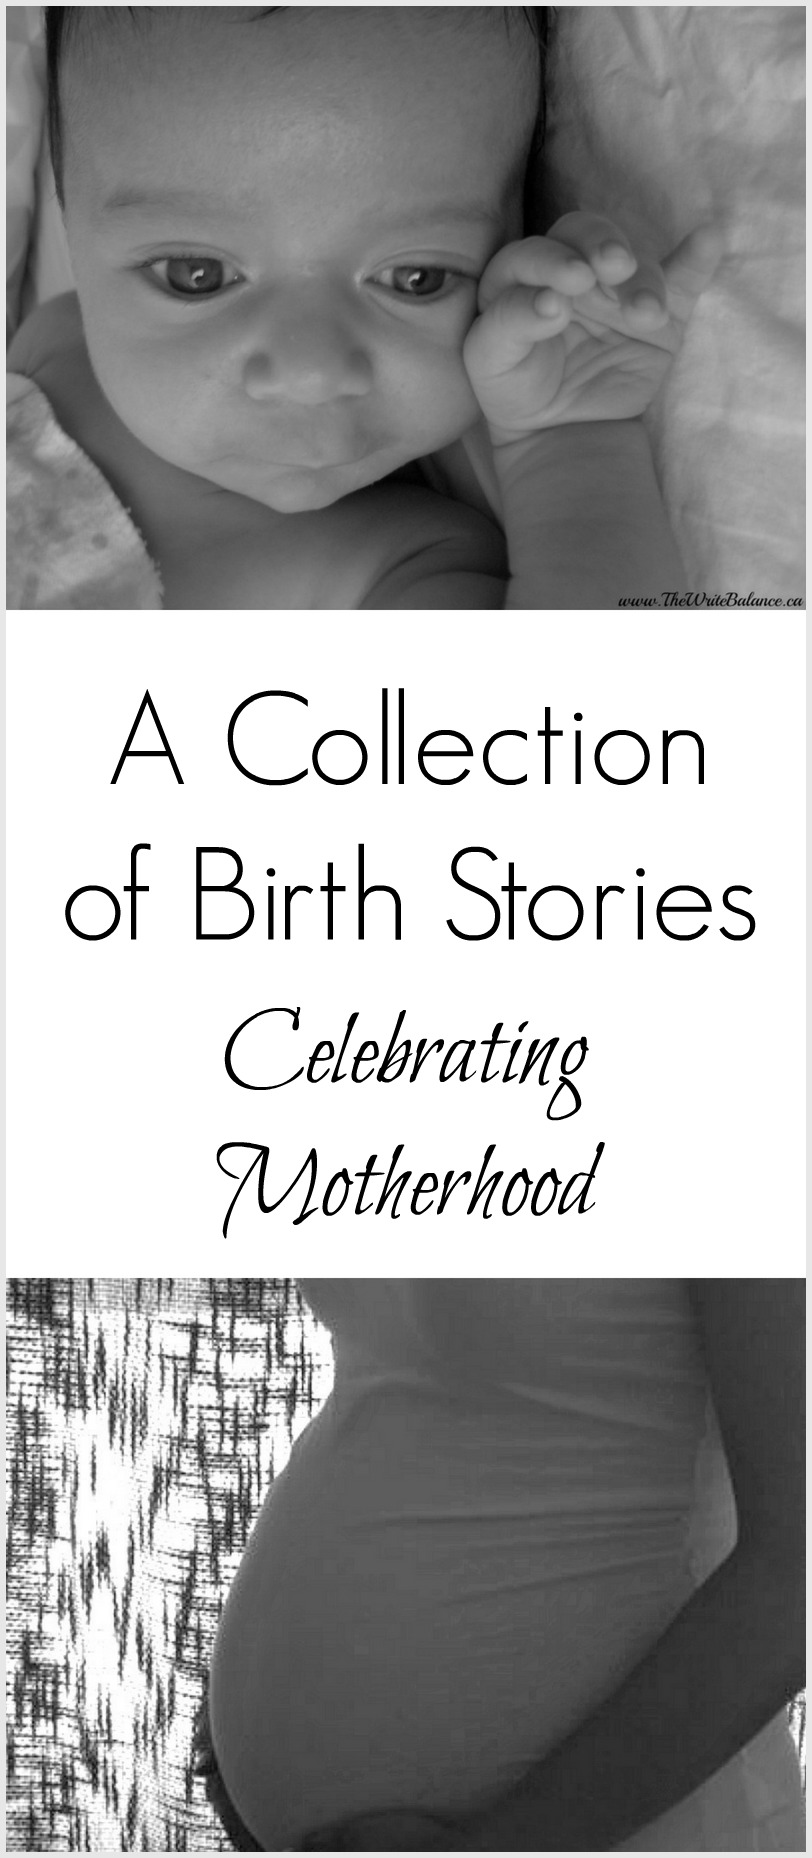 A Collection of Birth Stories, Celebrating Motherhood